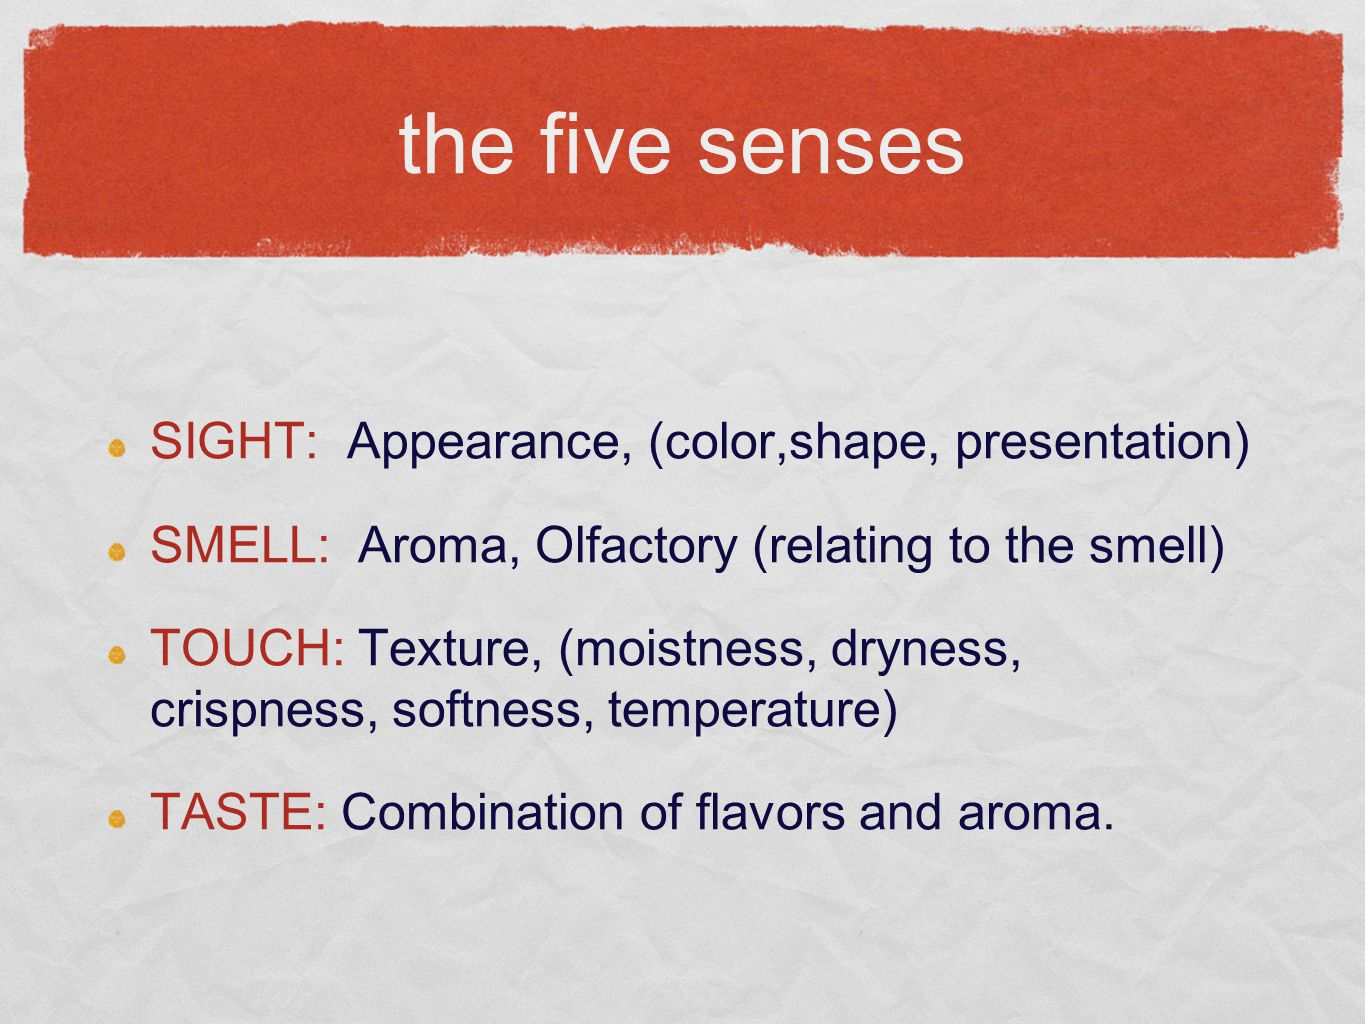 the five senses SIGHT: Appearance, (color,shape, presentation) SMELL: Aroma, Olfactory (relating to the smell) TOUCH: Texture, (moistness, dryness, crispness, softness, temperature) TASTE: Combination of flavors and aroma.